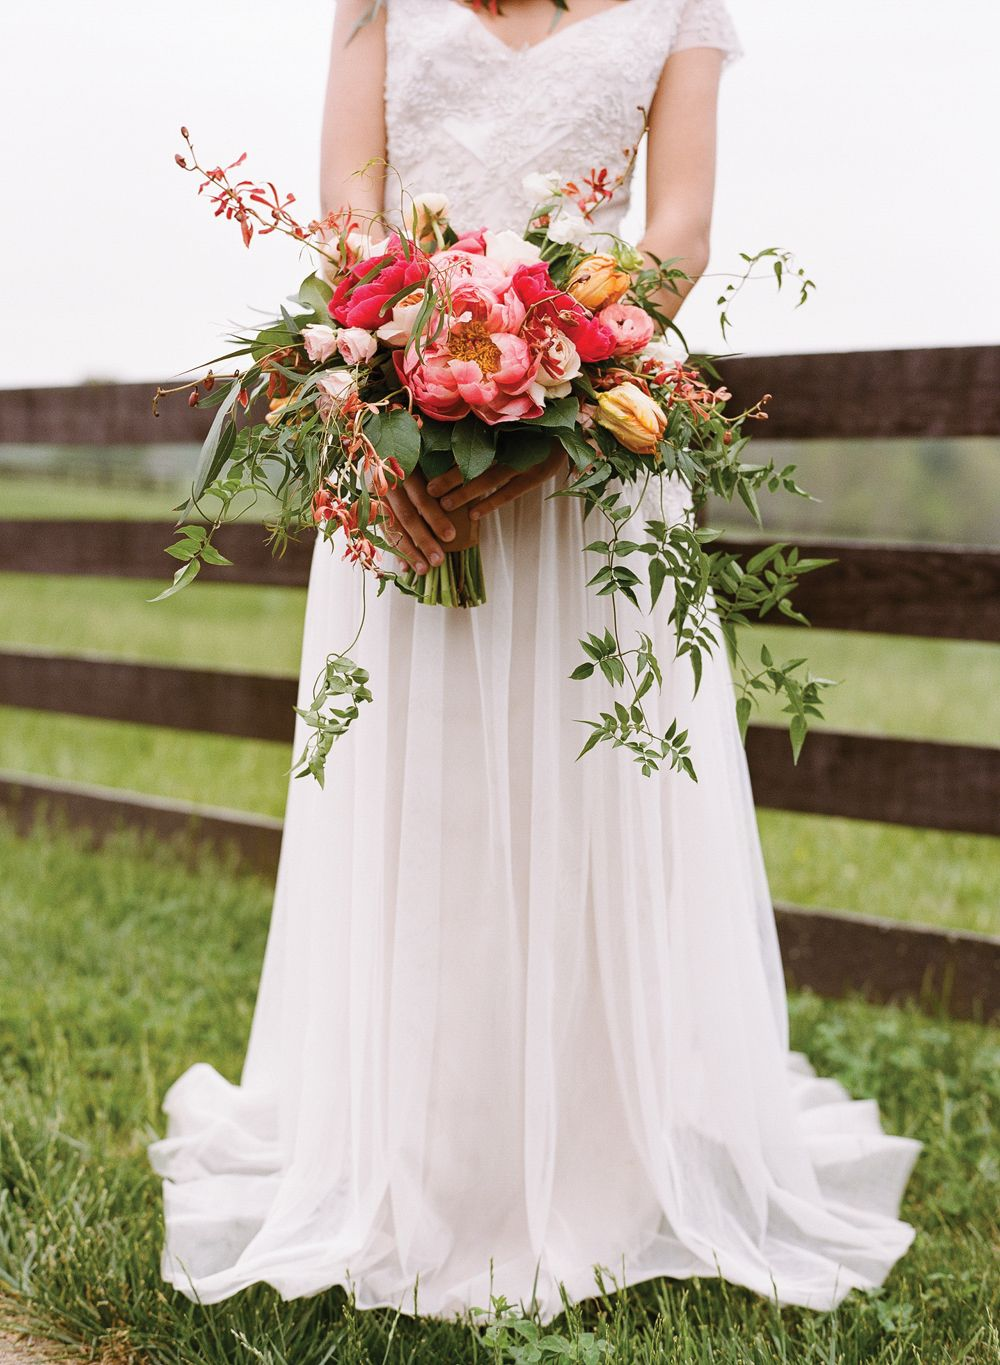 Bride with stunning bouquet in a palette of pink, blush and rust orange including garden roses, tulips, orchids and peonies. Bouquet by Southern Blooms by Pat's Floral Designs, bride's dress by Sarah Janks, image by Jen Fariello.